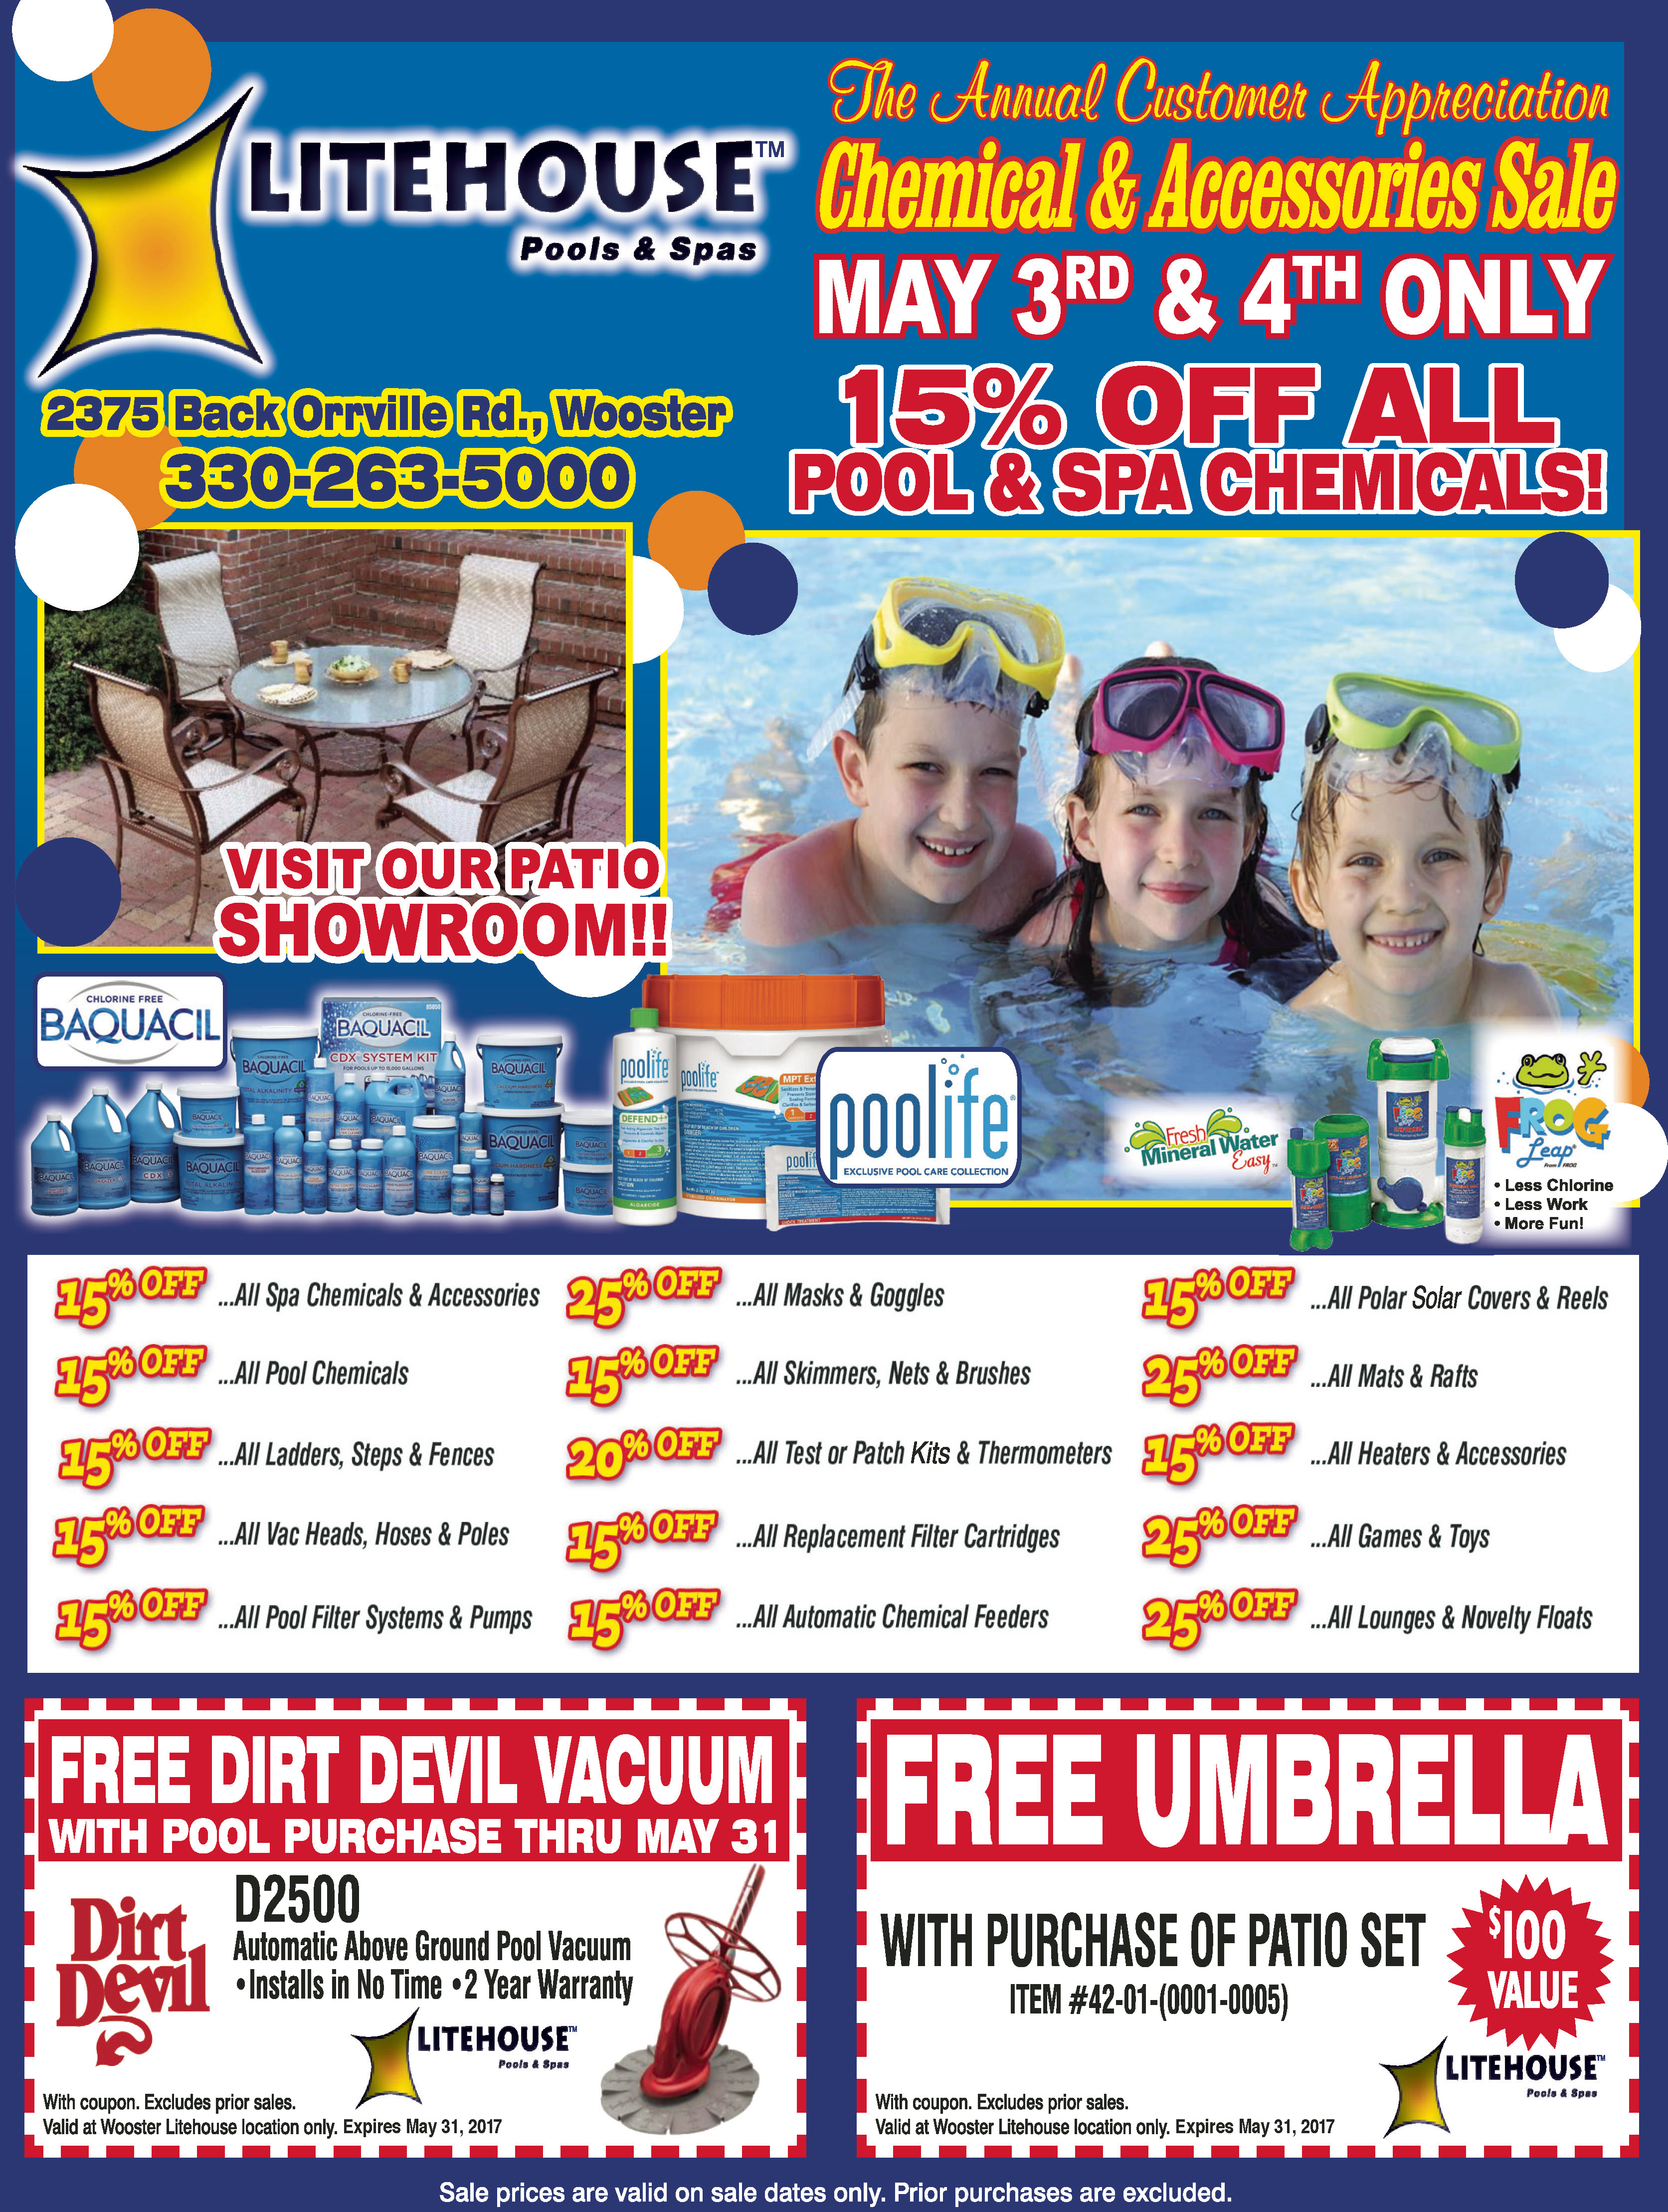 Litehouse pools coupons